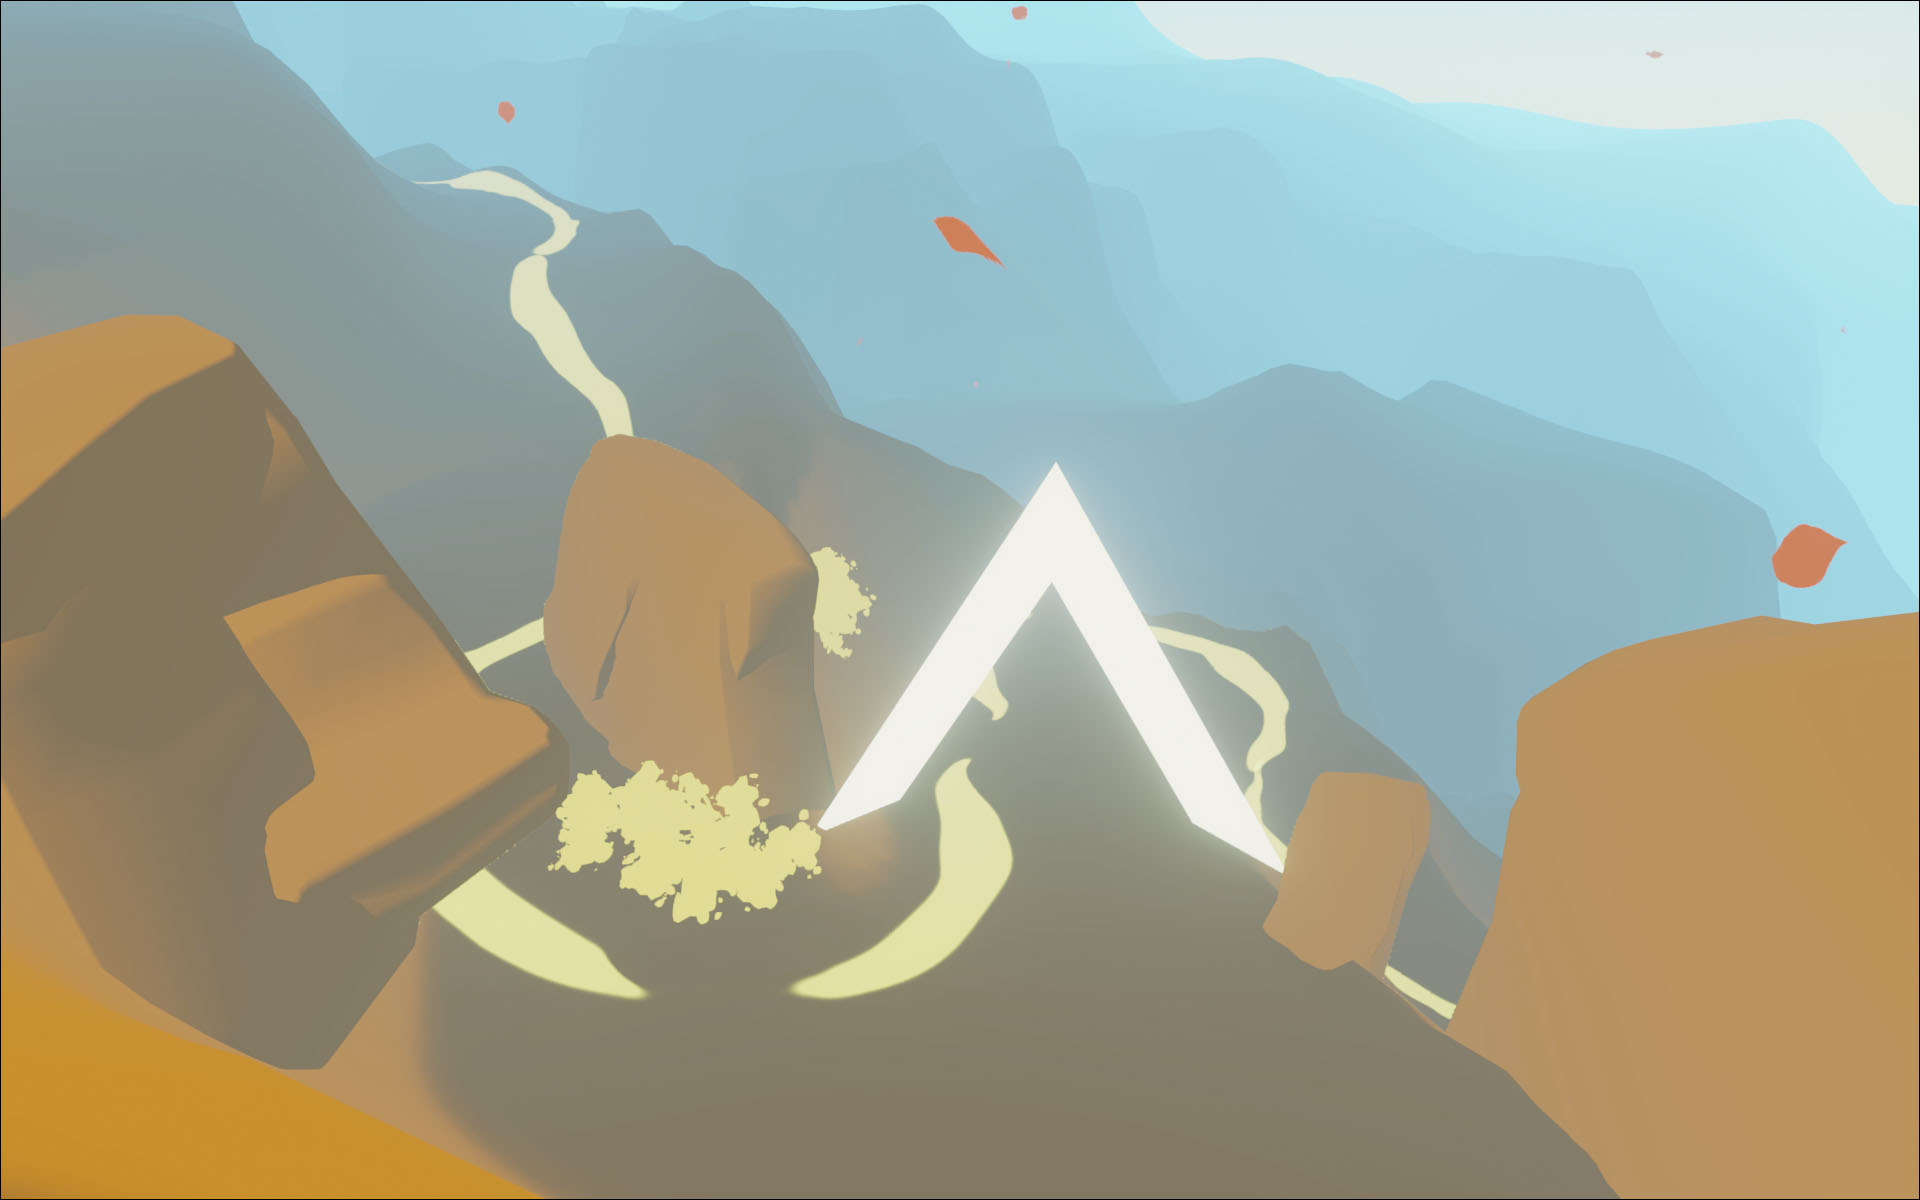 Stu has added a touch of shading to the rocks and is painting paths.